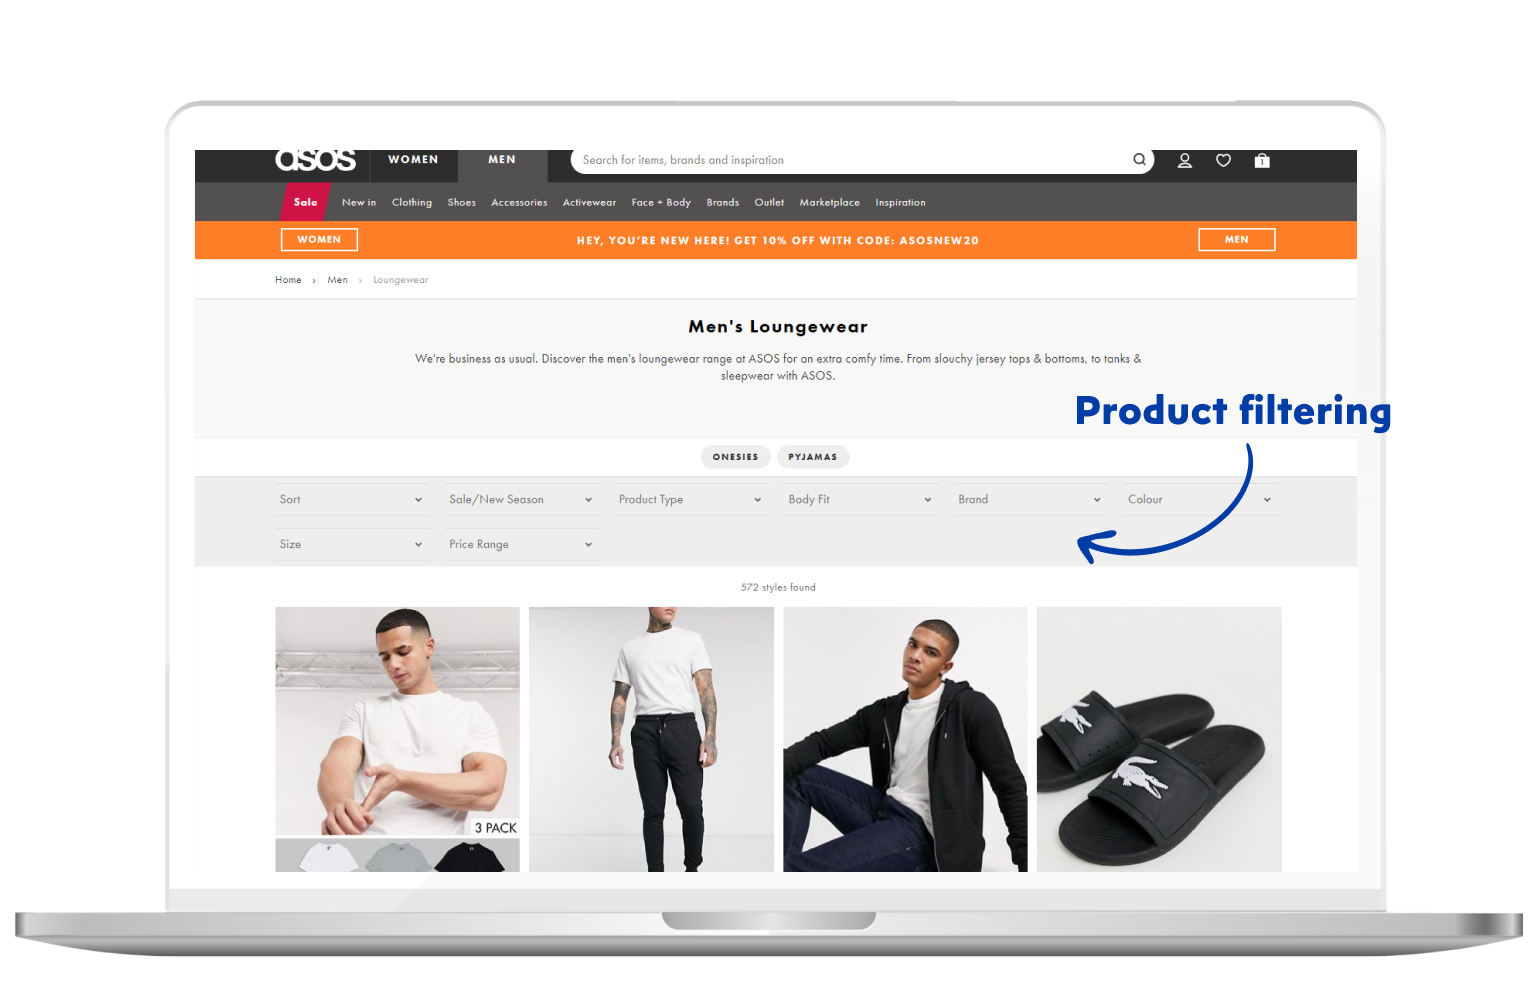 product filtering in eCommerce